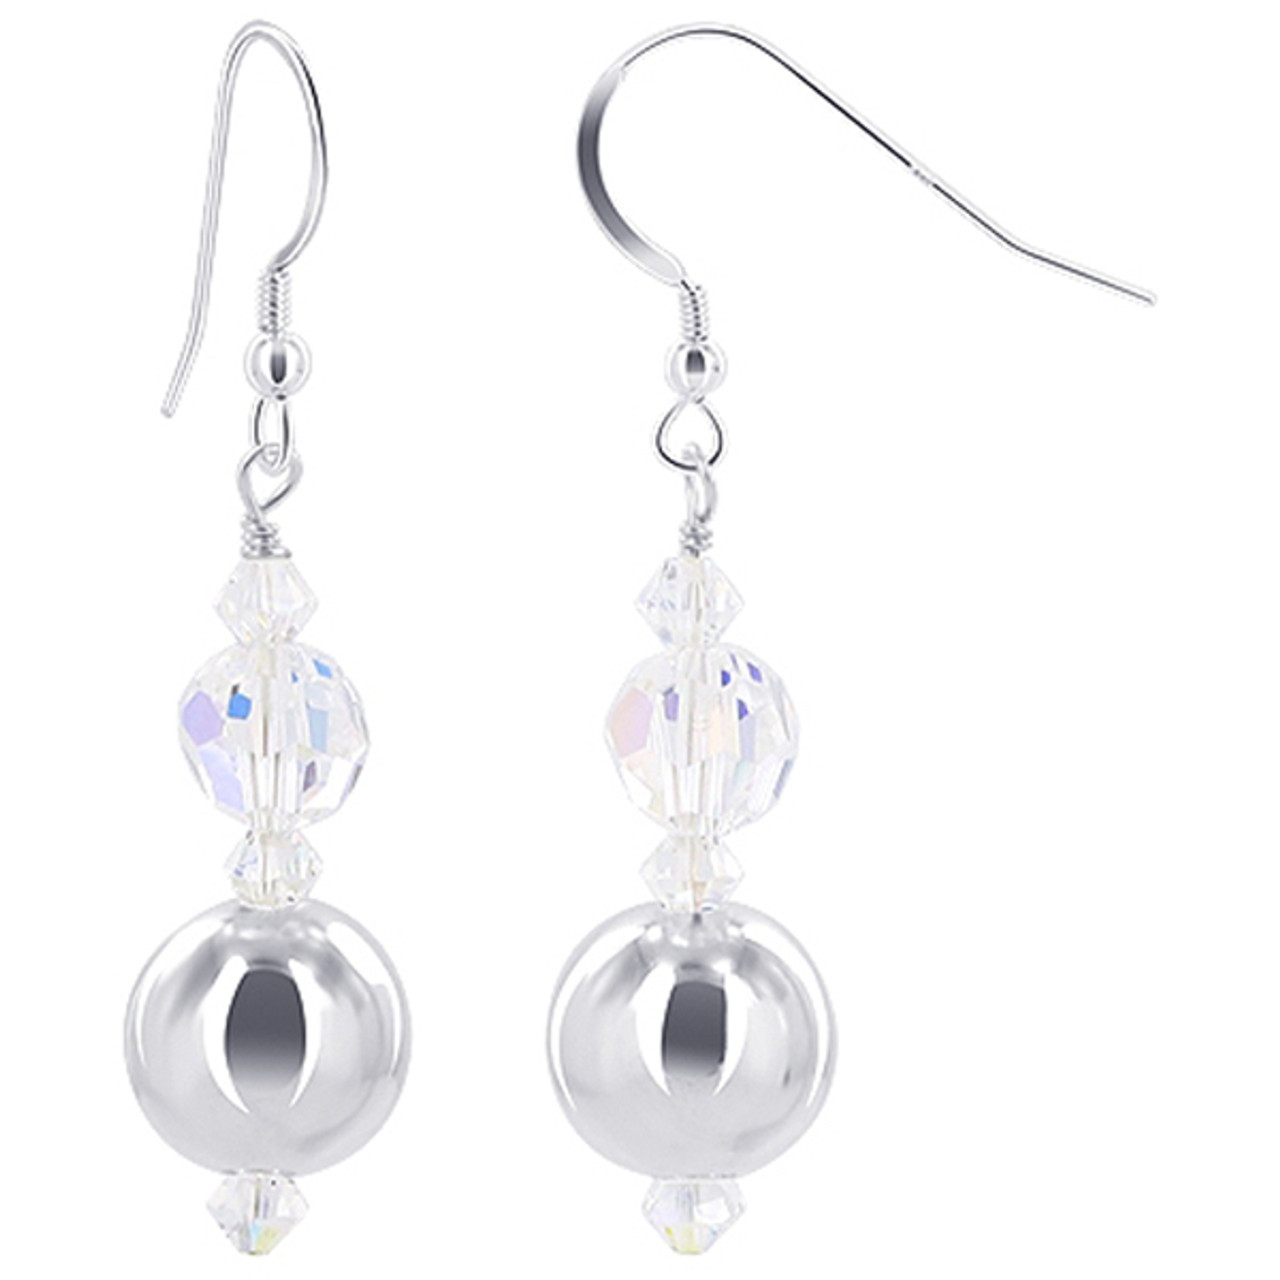 92afbf49230f3 925 Sterling Silver Round Ball with Swarovski Elements Clear AB Crystal  Handmade Drop Earrings